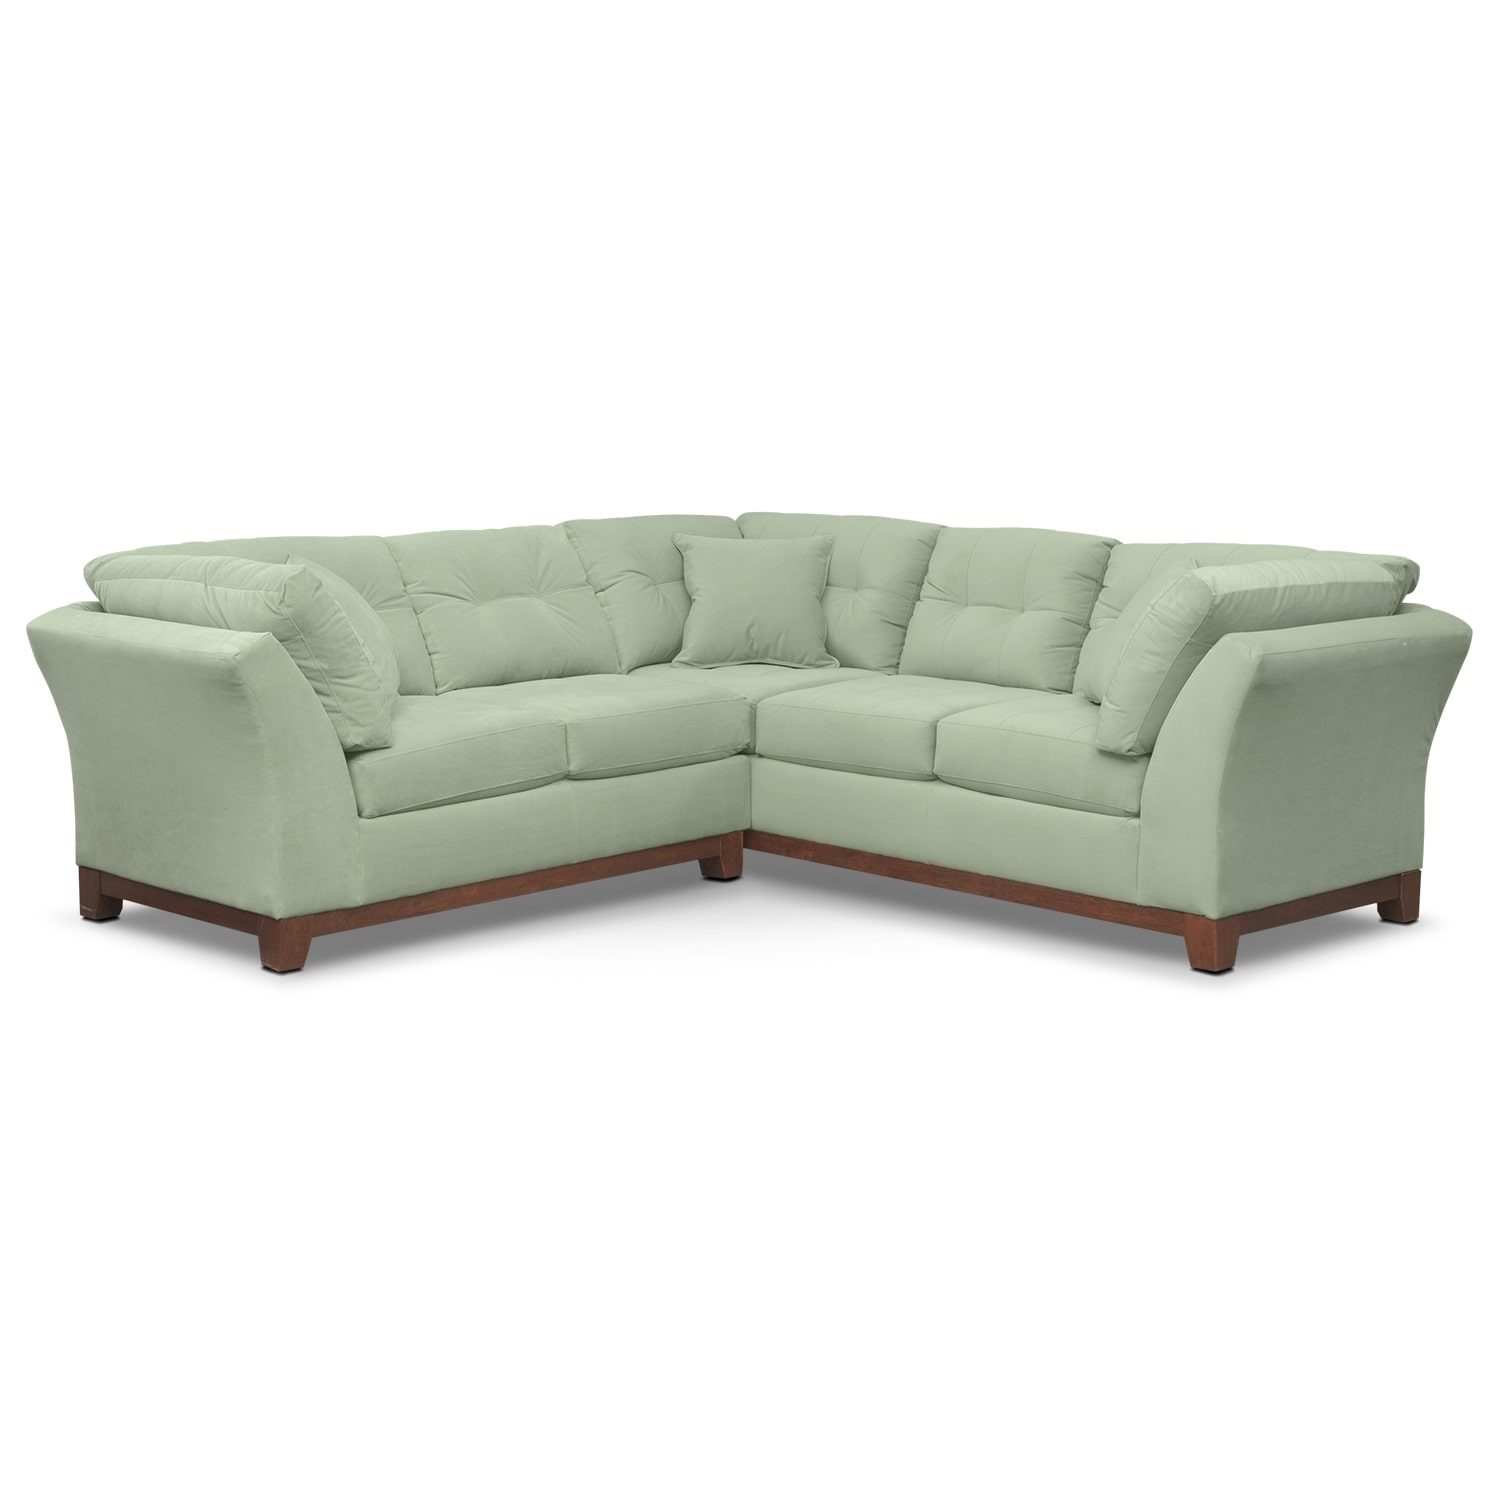 Living Room Furniture - Solace Spa II 2 Pc. Sectional (Alternate II)